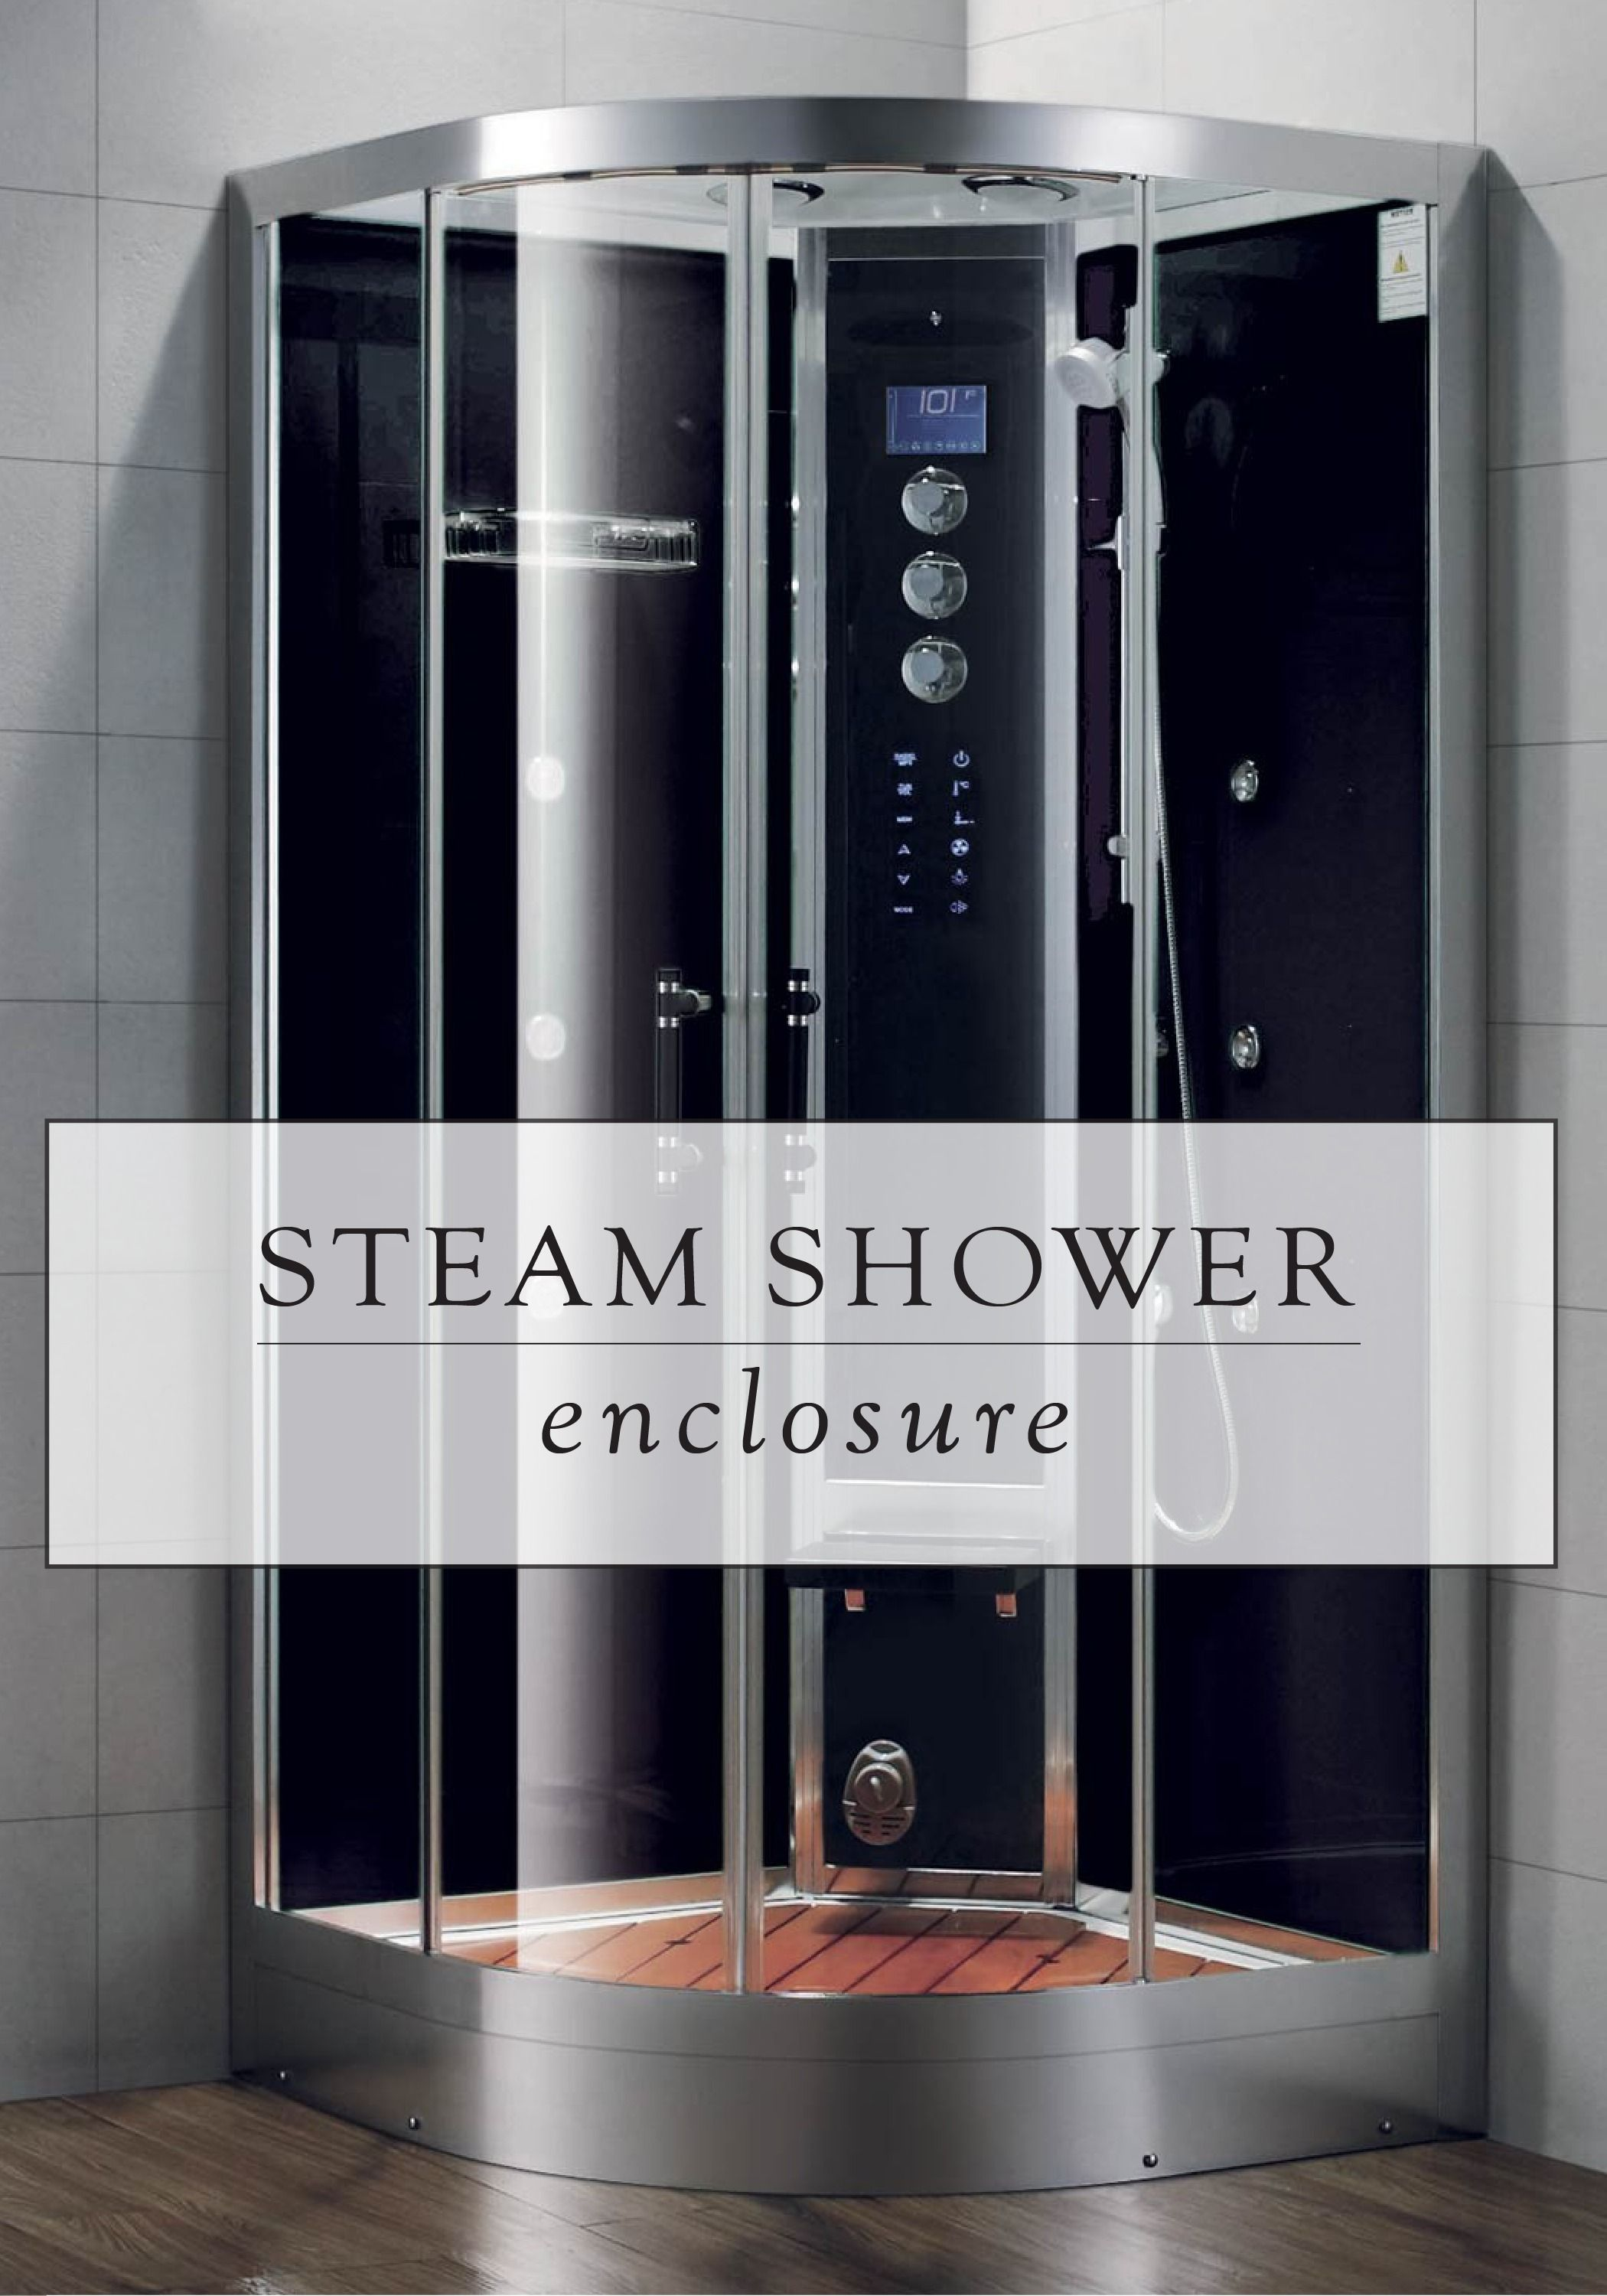 This Steam Shower Enclosure Is The Ultimate Way To De Stress This